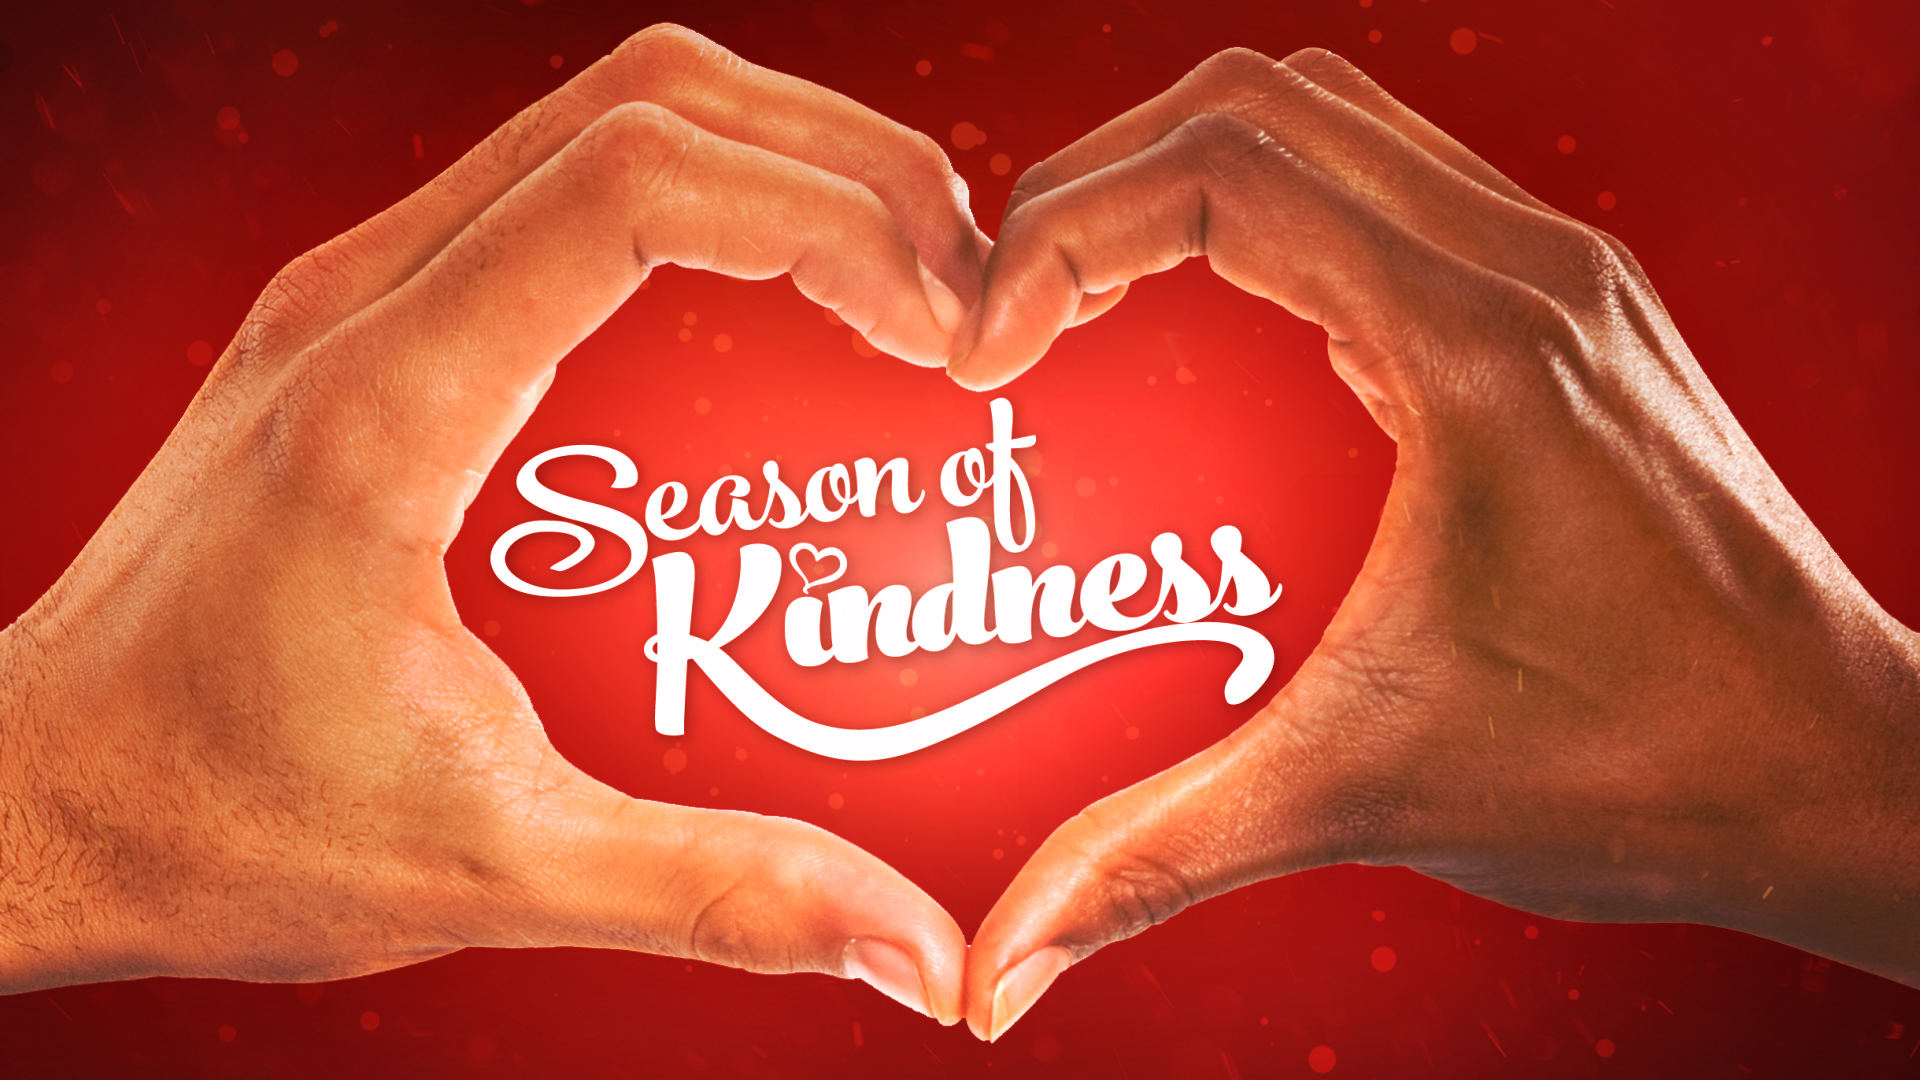 Car Money Watch Wallpaper Join Us 40 Days 40 Ways To Spread Kindness This Season